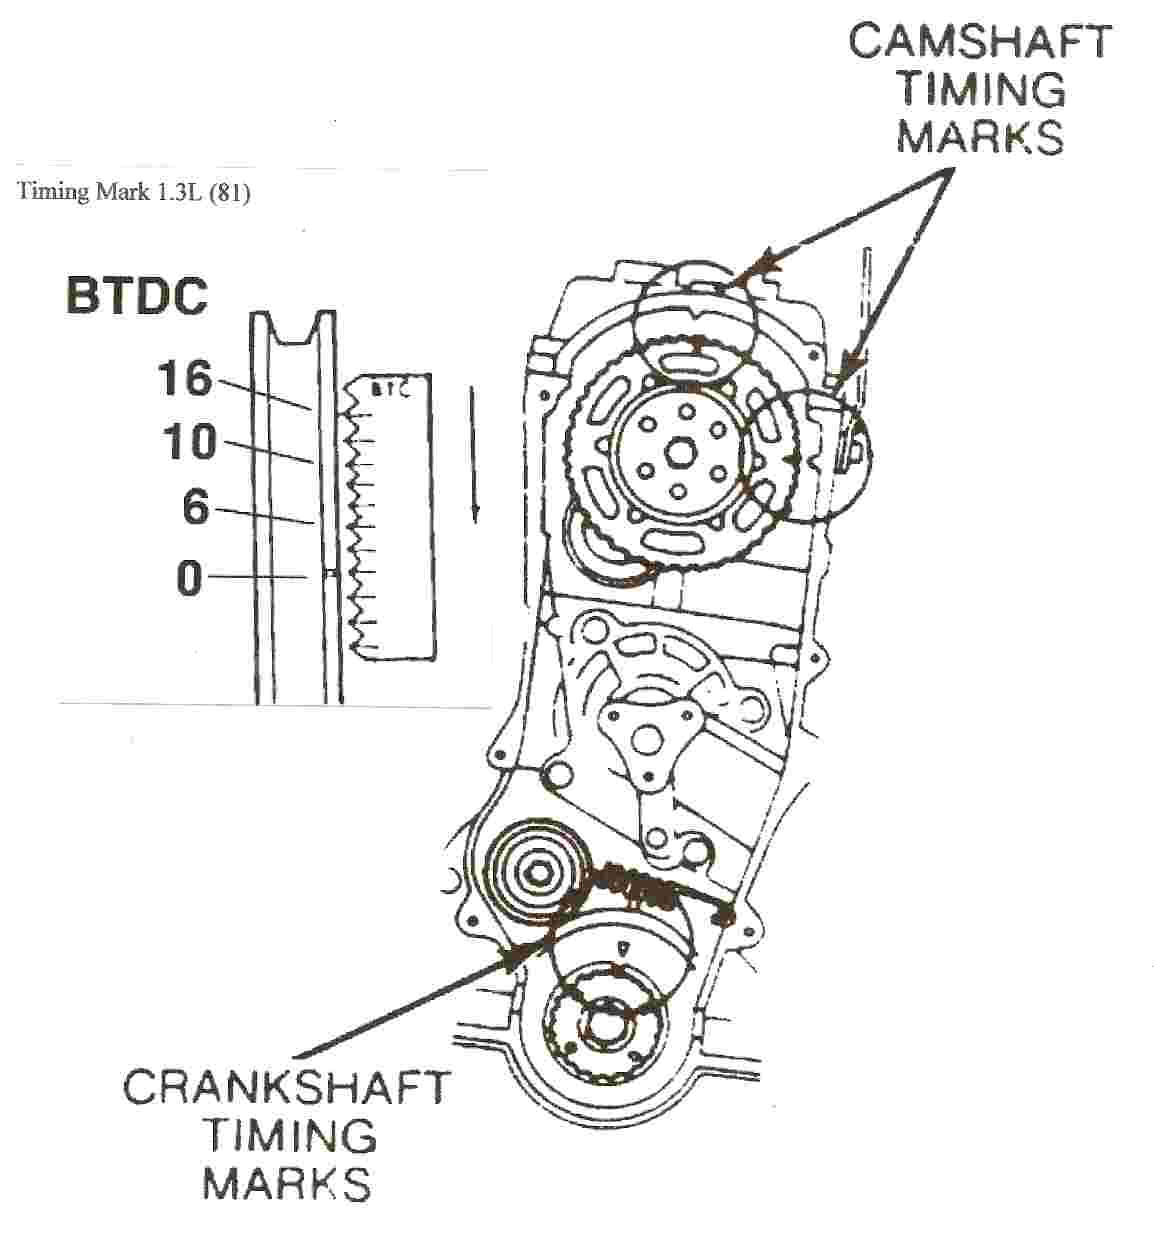 Ford Festiva Carburetor Diagram Detailed Wiring Diagrams Fuse Box Would Like To Know Timing Marks For A 1988 1965 Mustang